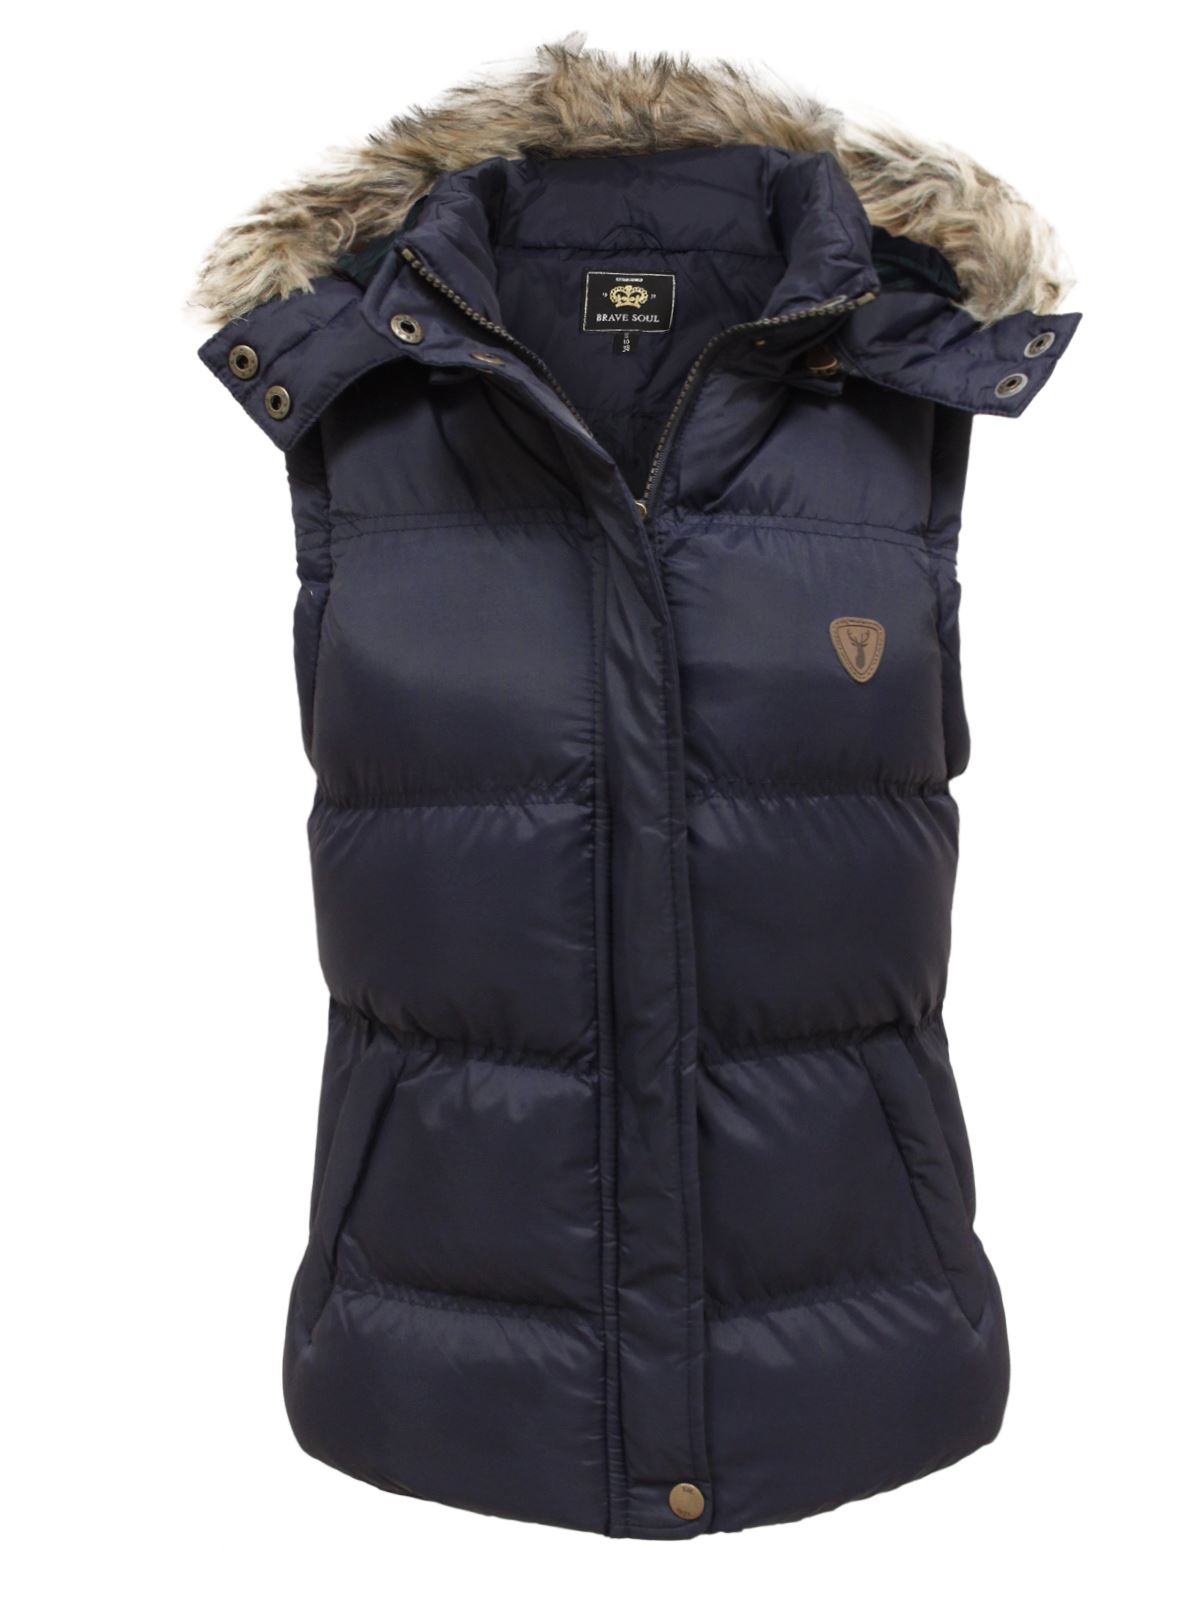 Womens Gilets. The ideal transitional piece this season, our range of women's gilets has everything from non-hooded, hooded and padded designs, all offering the perfect balance of style and practicality.